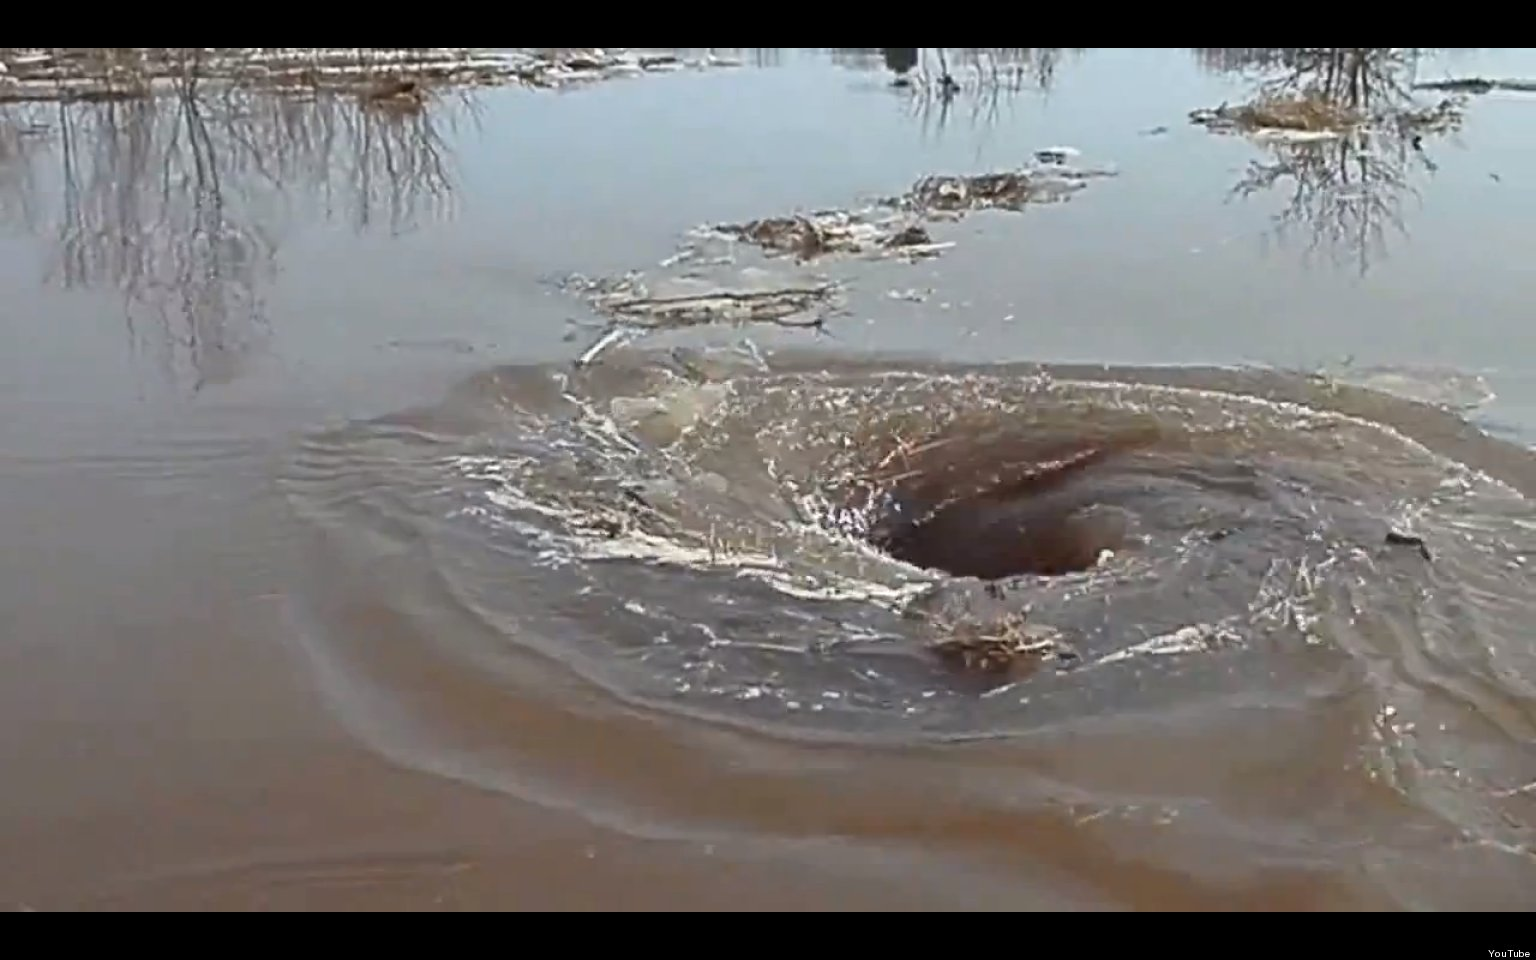 Whirlpool Video: Vortex In Latvian River Devours All That